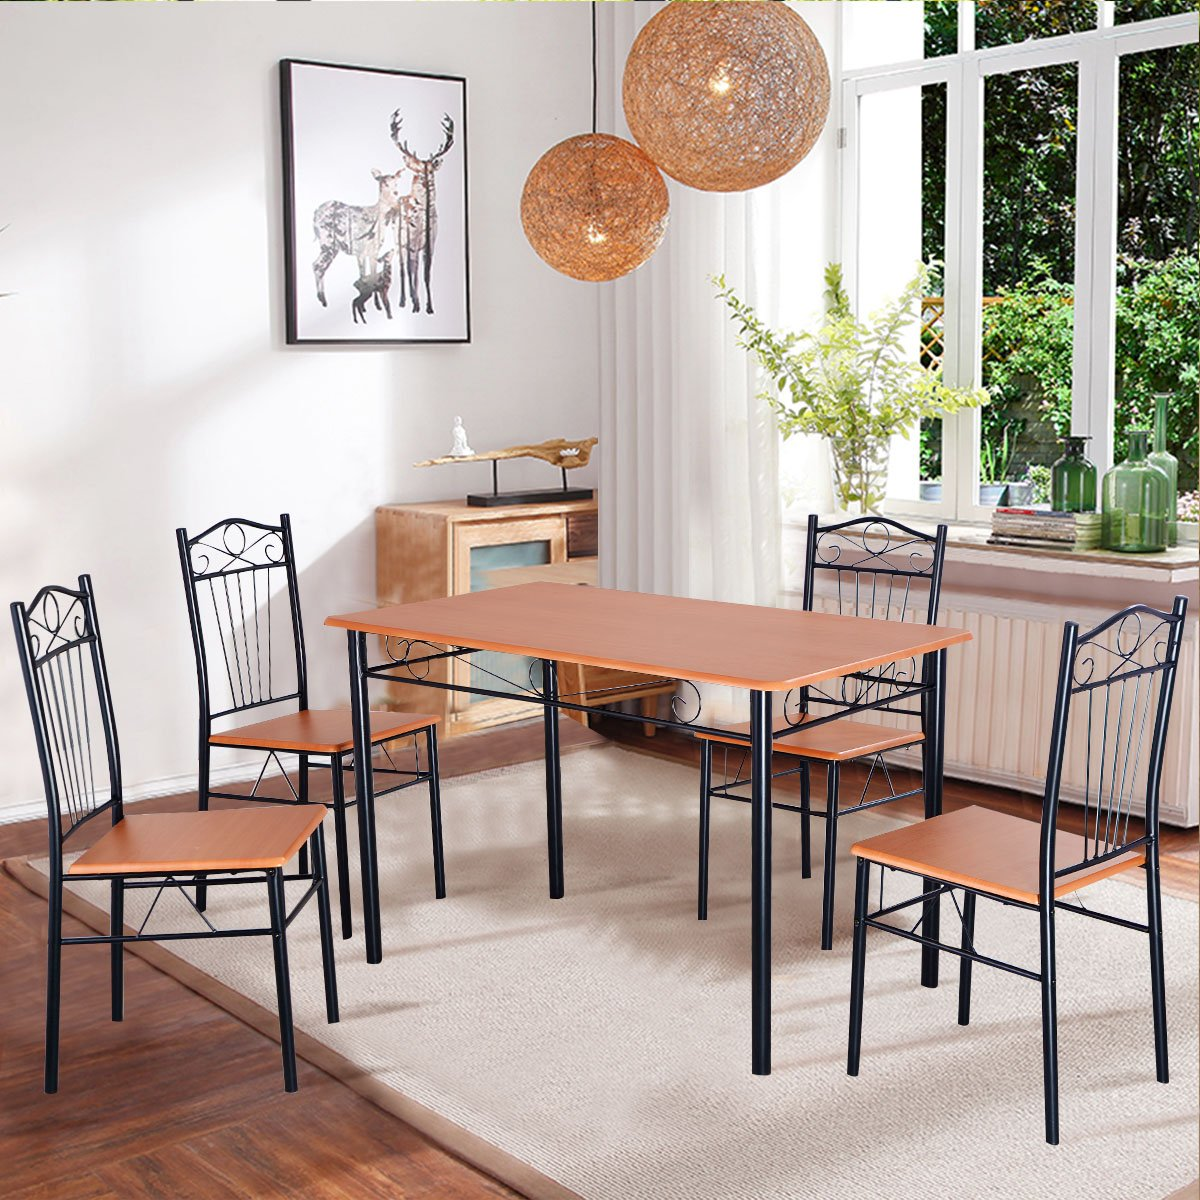 Superb Amazon.com: Tangkula Steel Frame Dining Set Table And Chairs Kitchen Modern  Furniture Bistro Wood: Home U0026 Kitchen